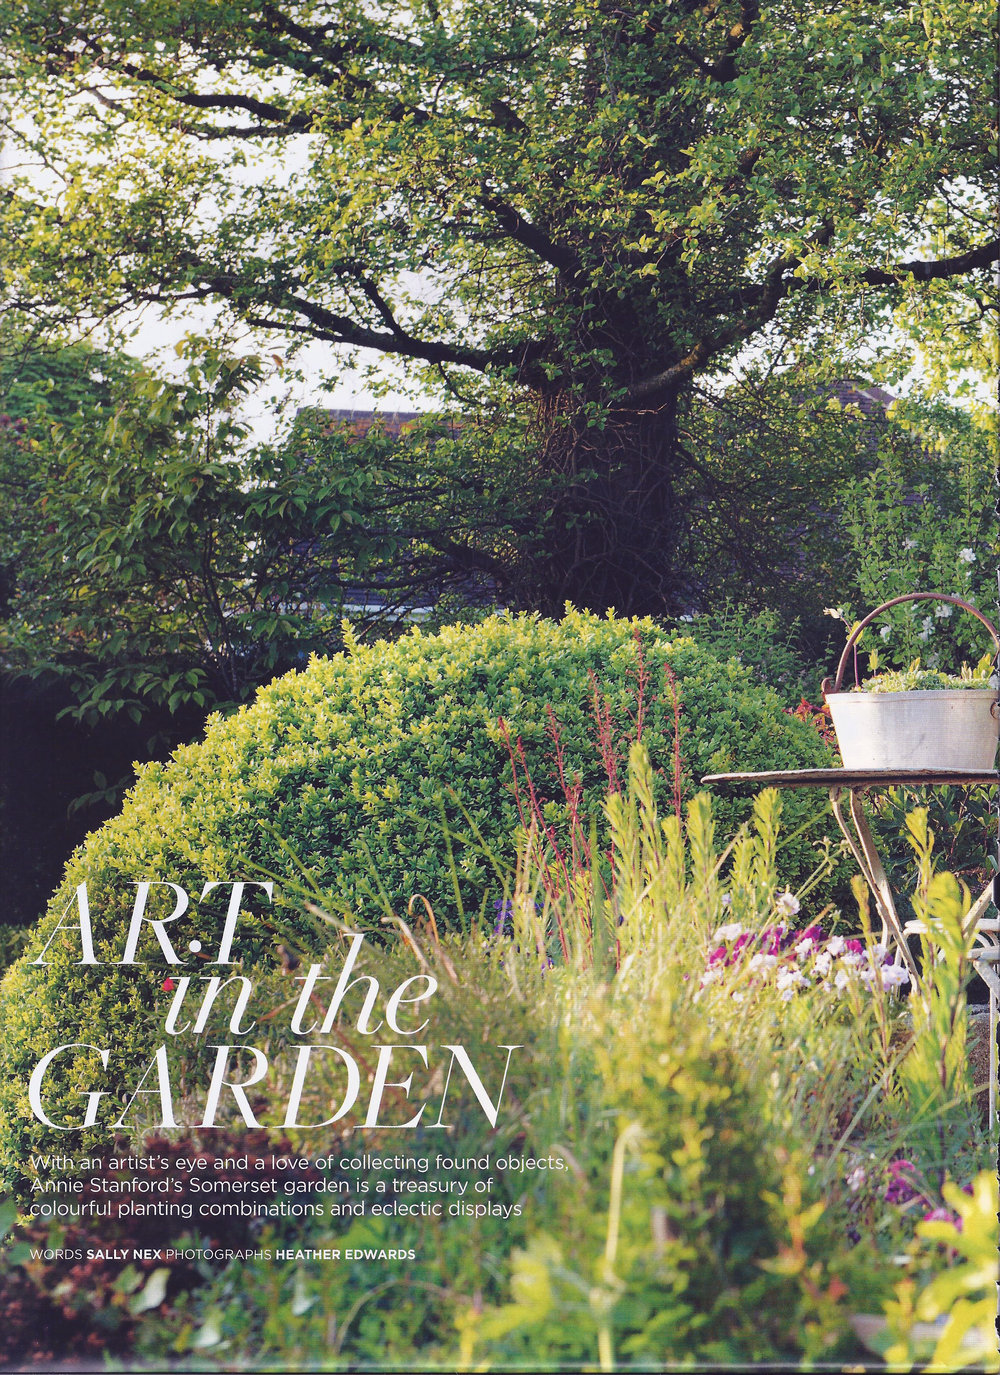 ART in the GARDEN 1.jpg